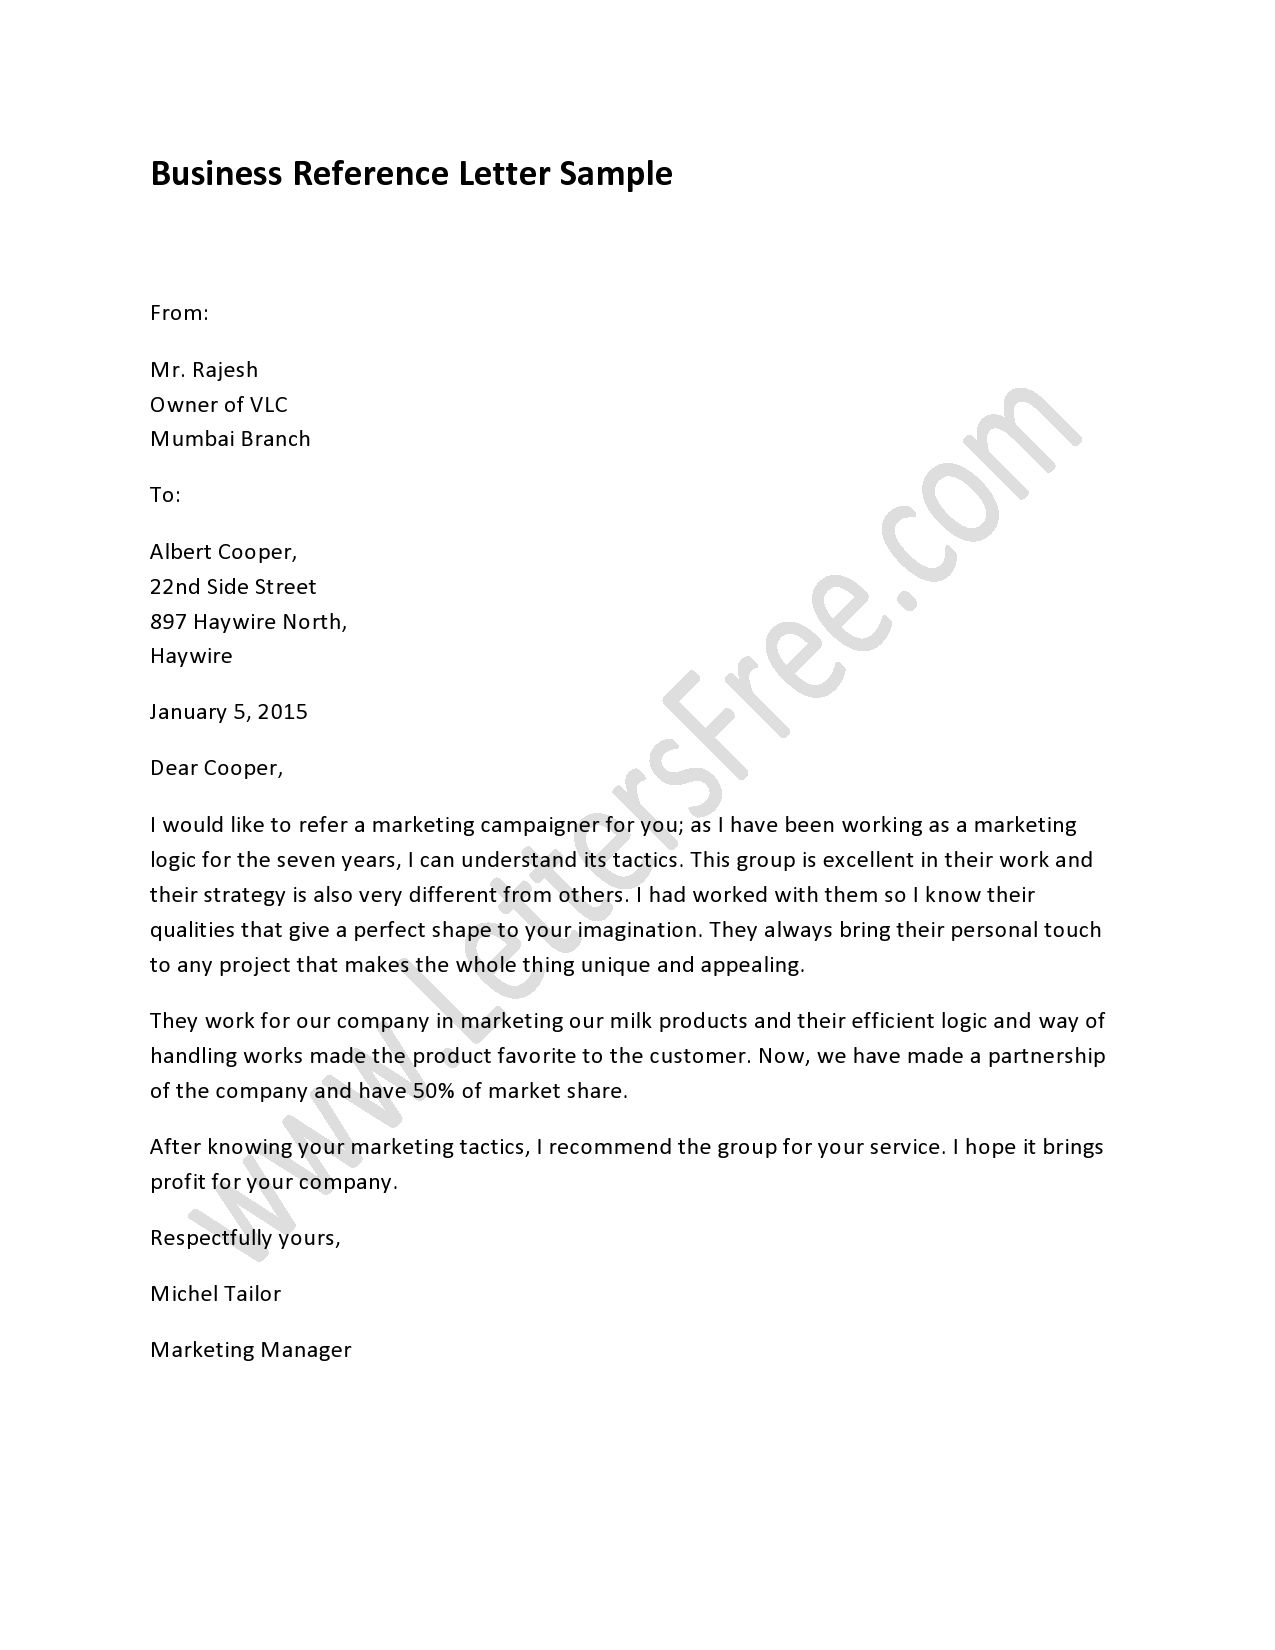 Business Reference Letter Professional reference letter